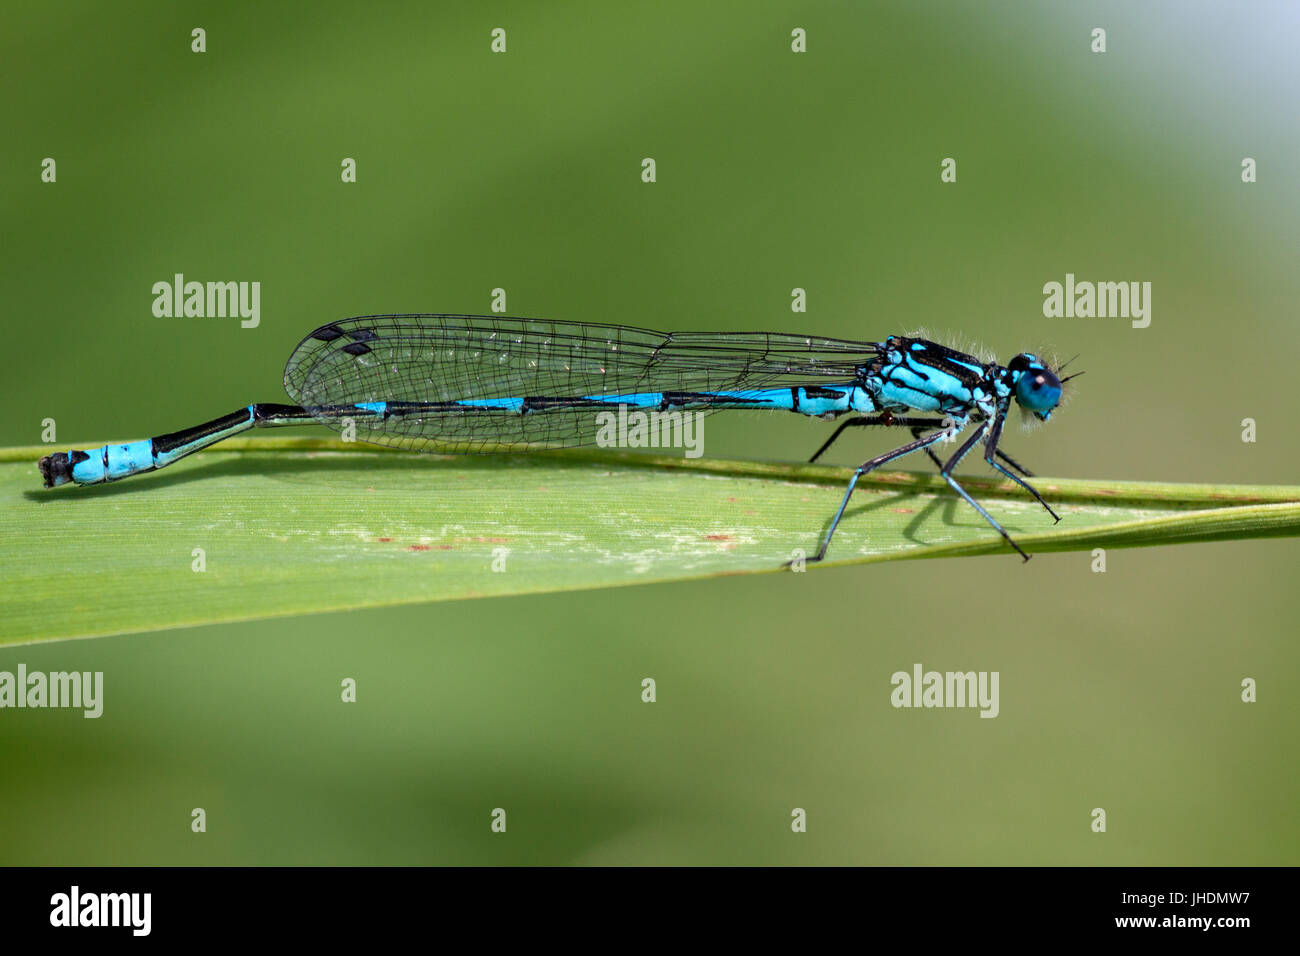 Blue dragonfly insect closeup macro on green background.  Photo taken with 90 mm macrolens. Stock Photo